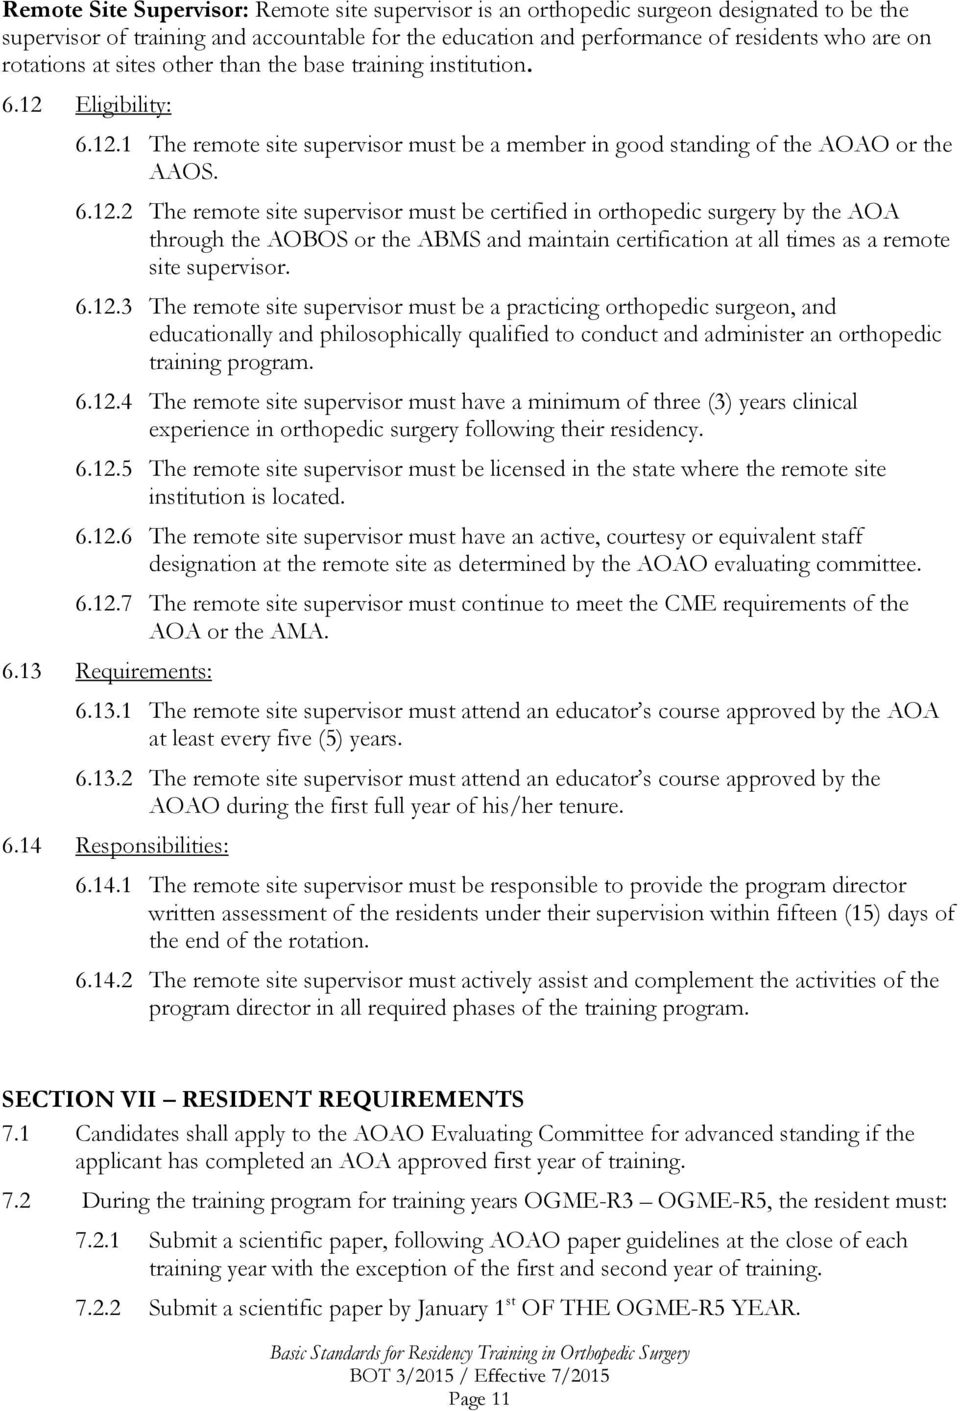 Eligibility: 6.12.1 The remote site supervisor must be a member in good standing of the AOAO or the AAOS. 6.12.2 The remote site supervisor must be certified in orthopedic surgery by the AOA through the AOBOS or the ABMS and maintain certification at all times as a remote site supervisor.